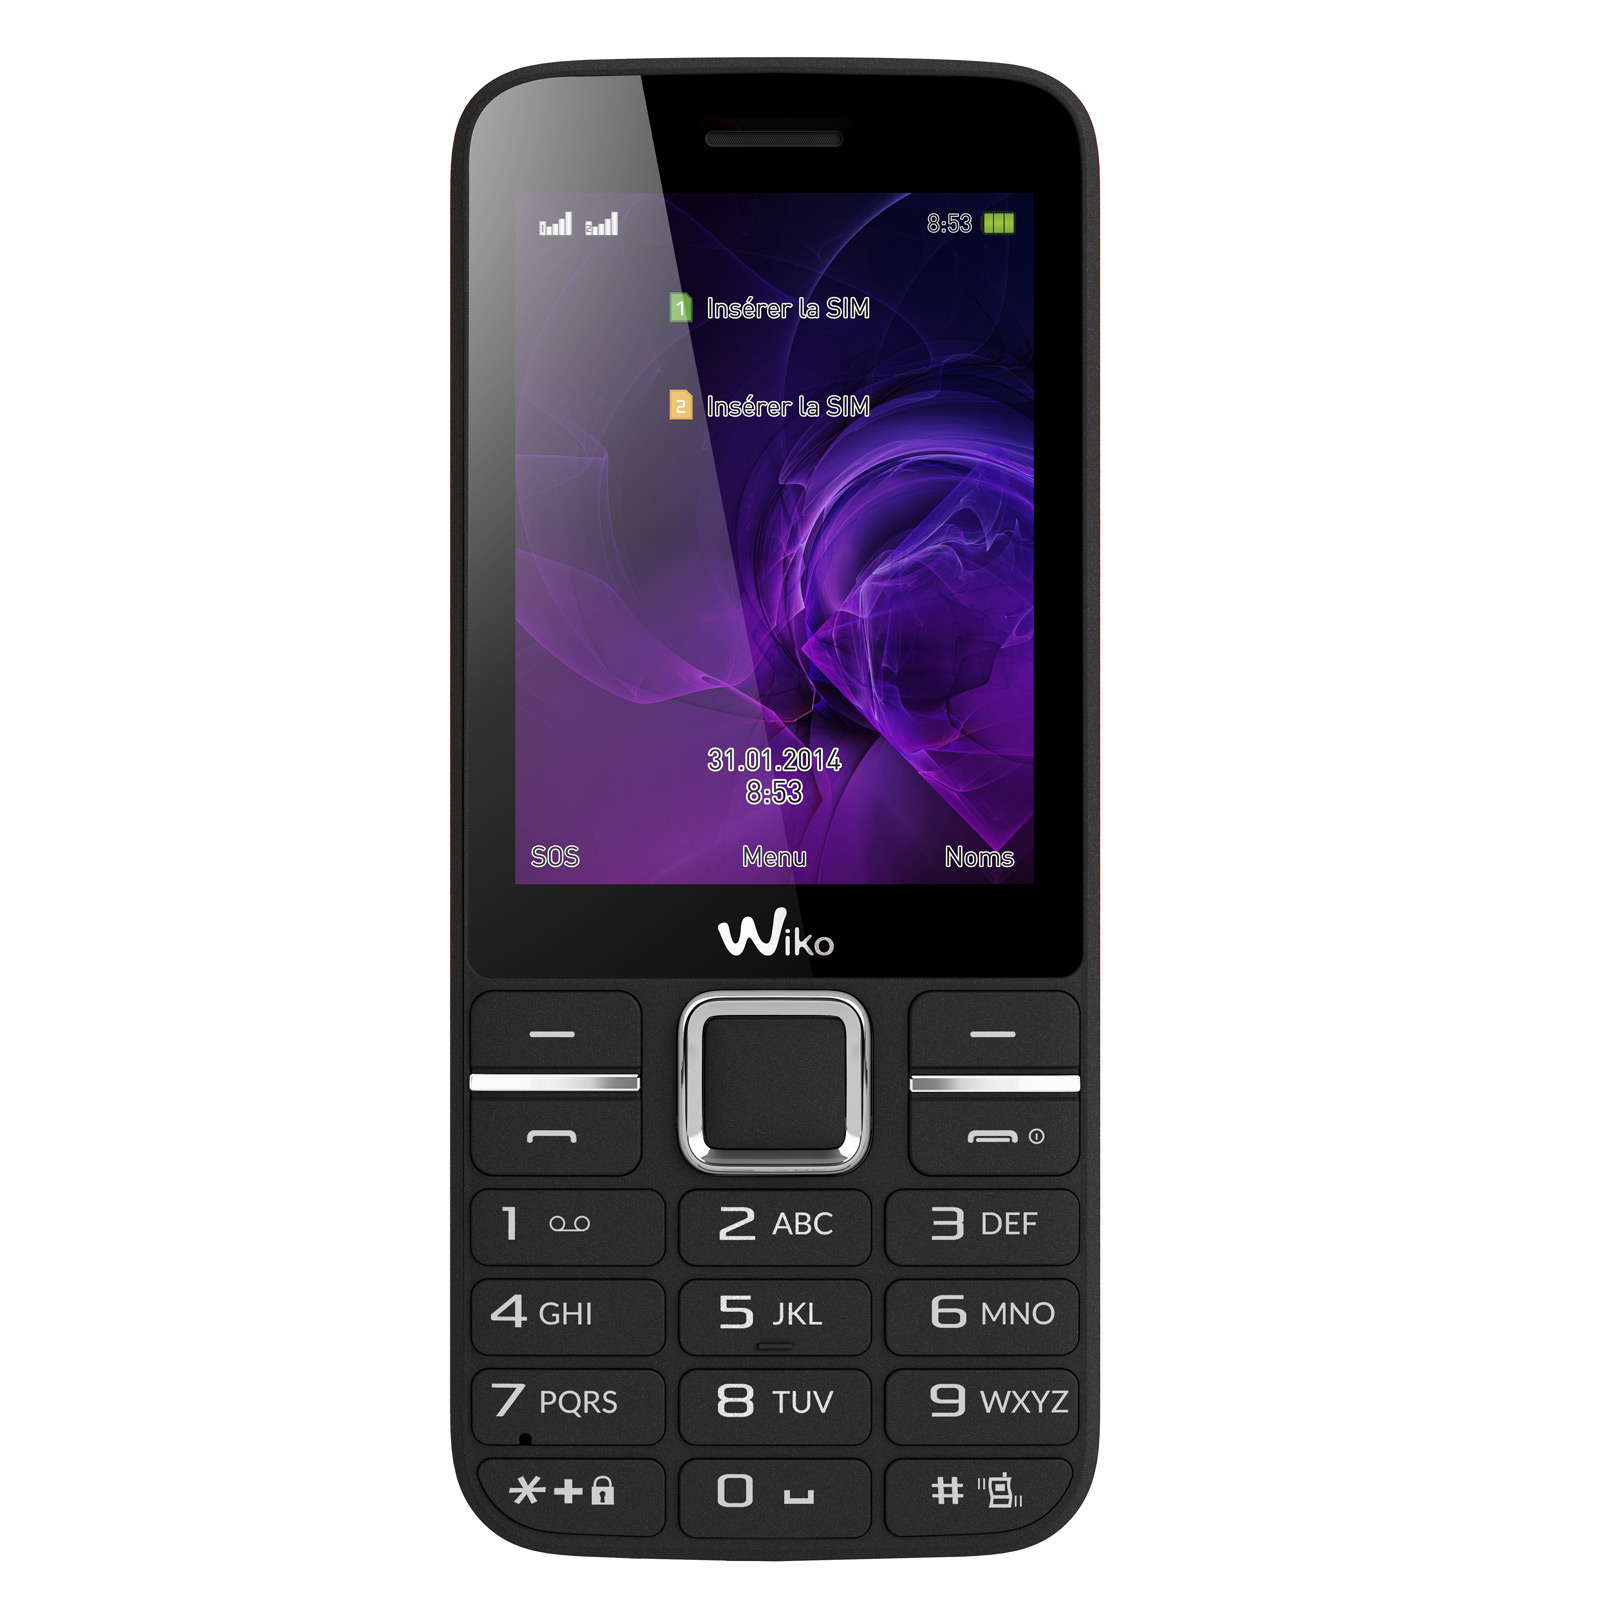 wiko kar 3 noir mobile smartphone wiko sur ldlc. Black Bedroom Furniture Sets. Home Design Ideas